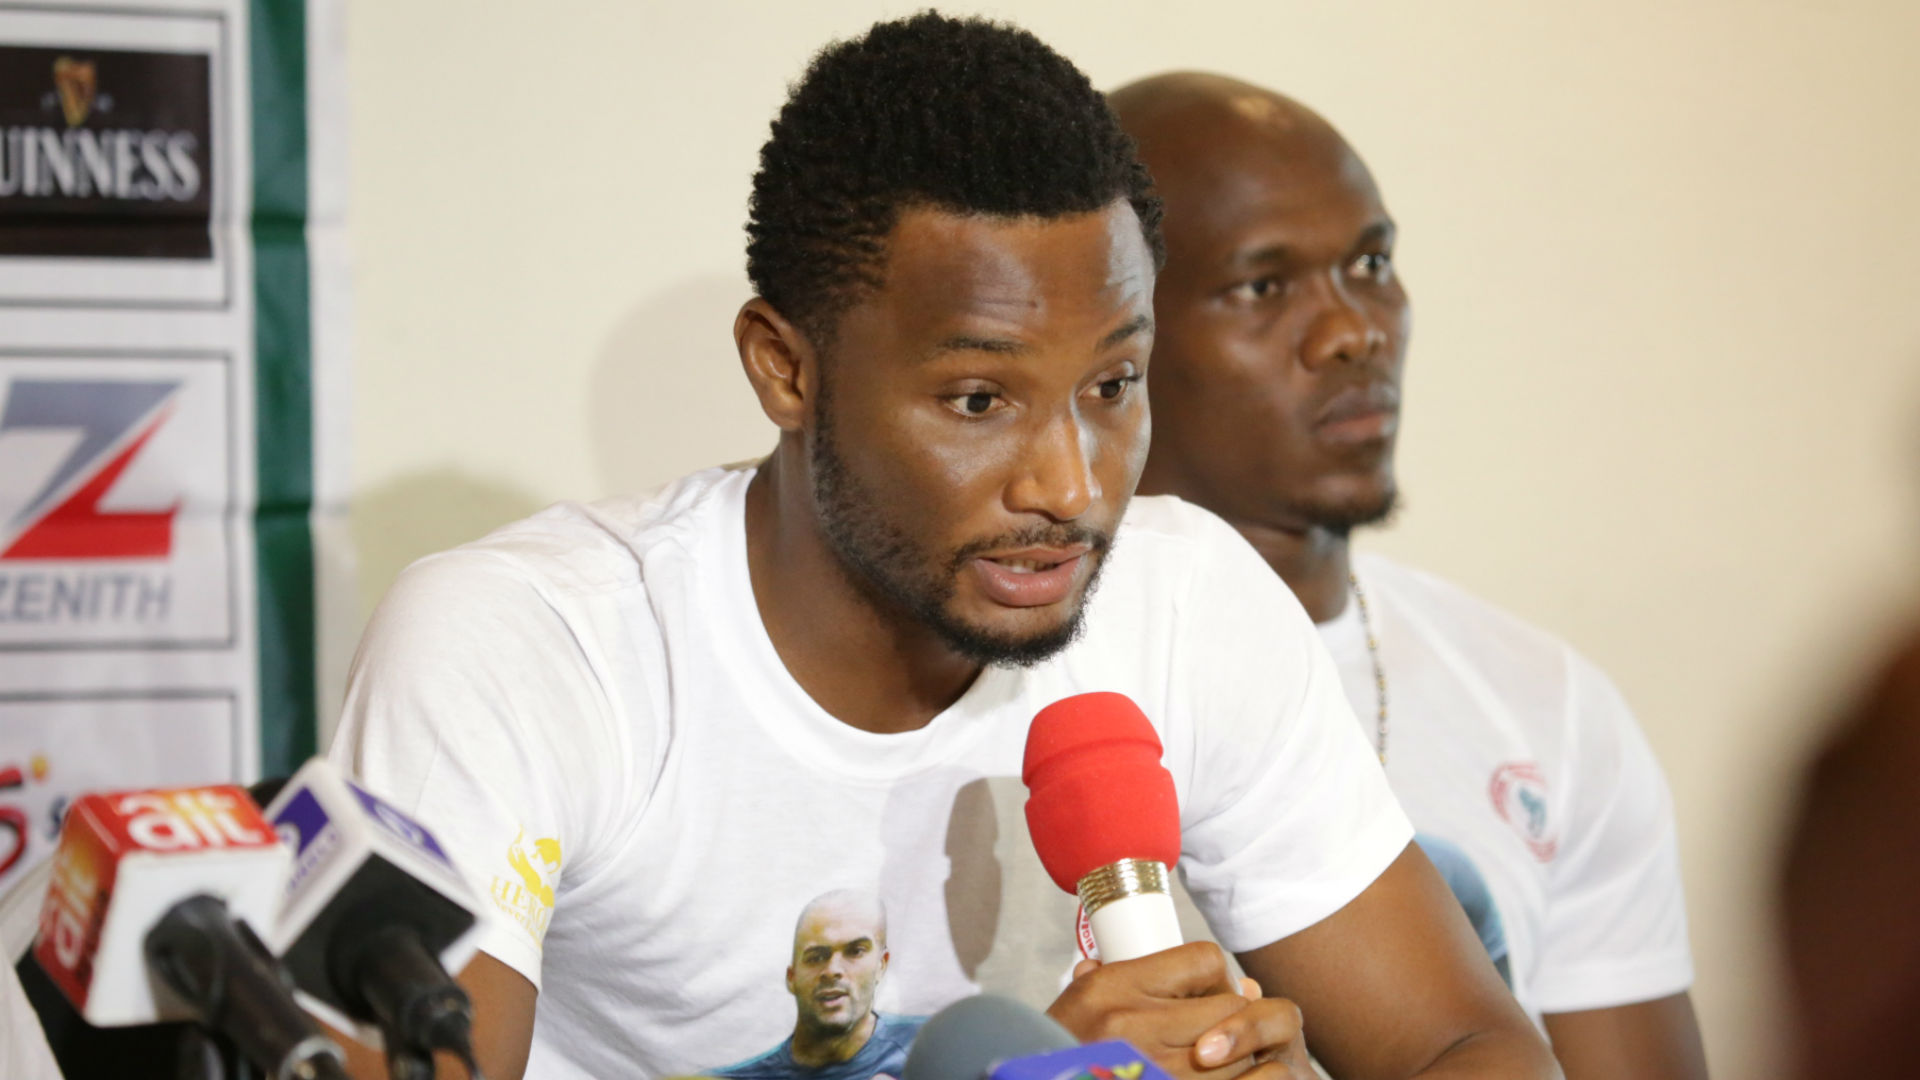 'I do not reject any offers made to me' – Mikel not ruling out Egyptian Premier League move